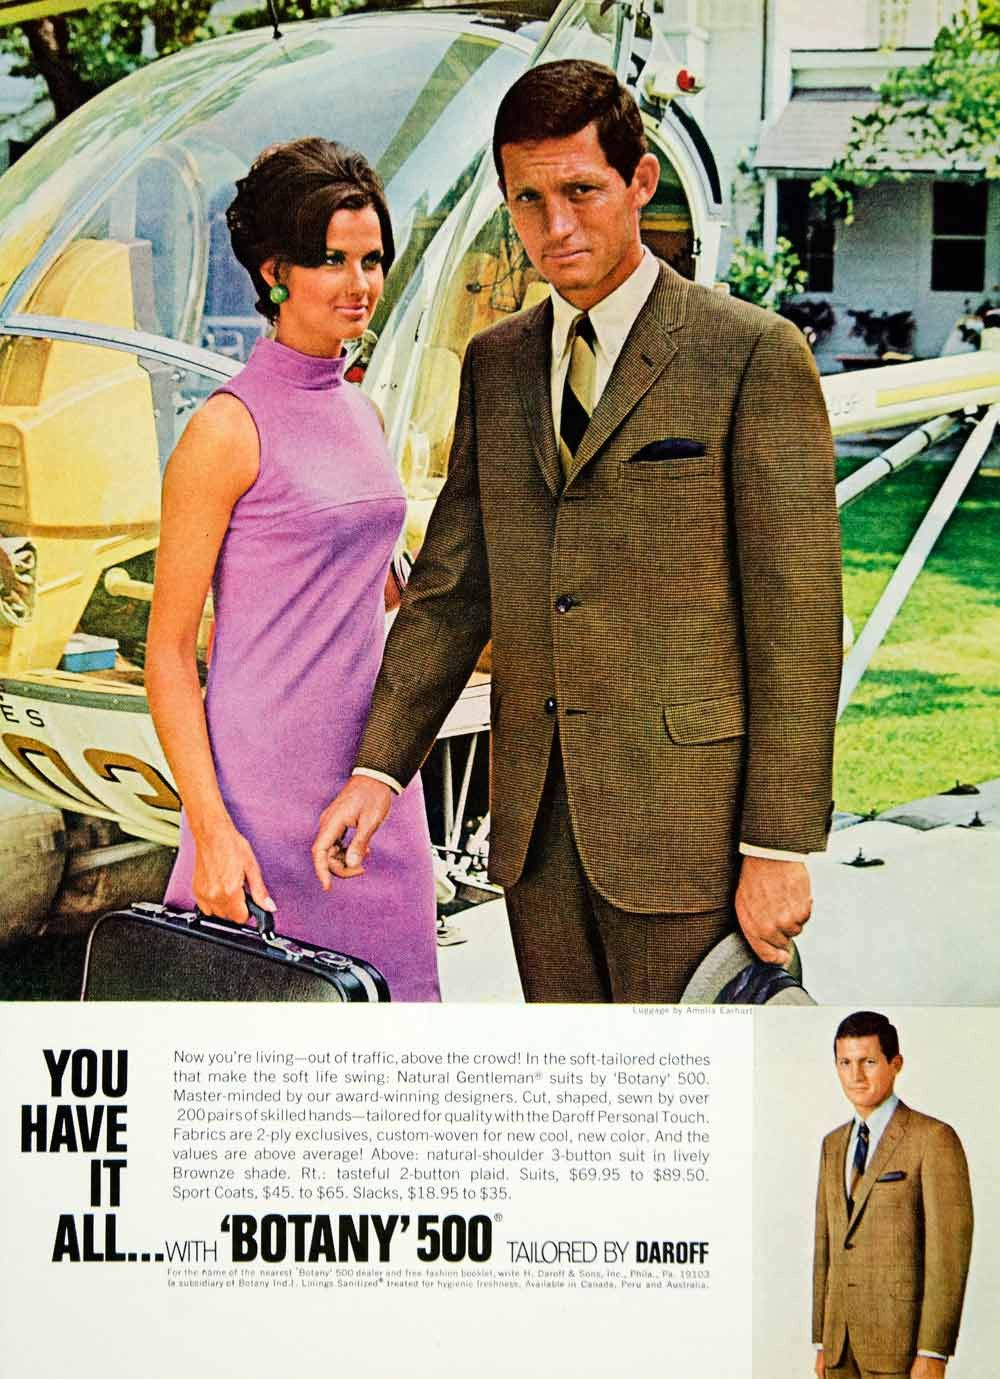 1968 Ad Vintage Botany 500 Business Suit Fashion 60's Style YMMA3